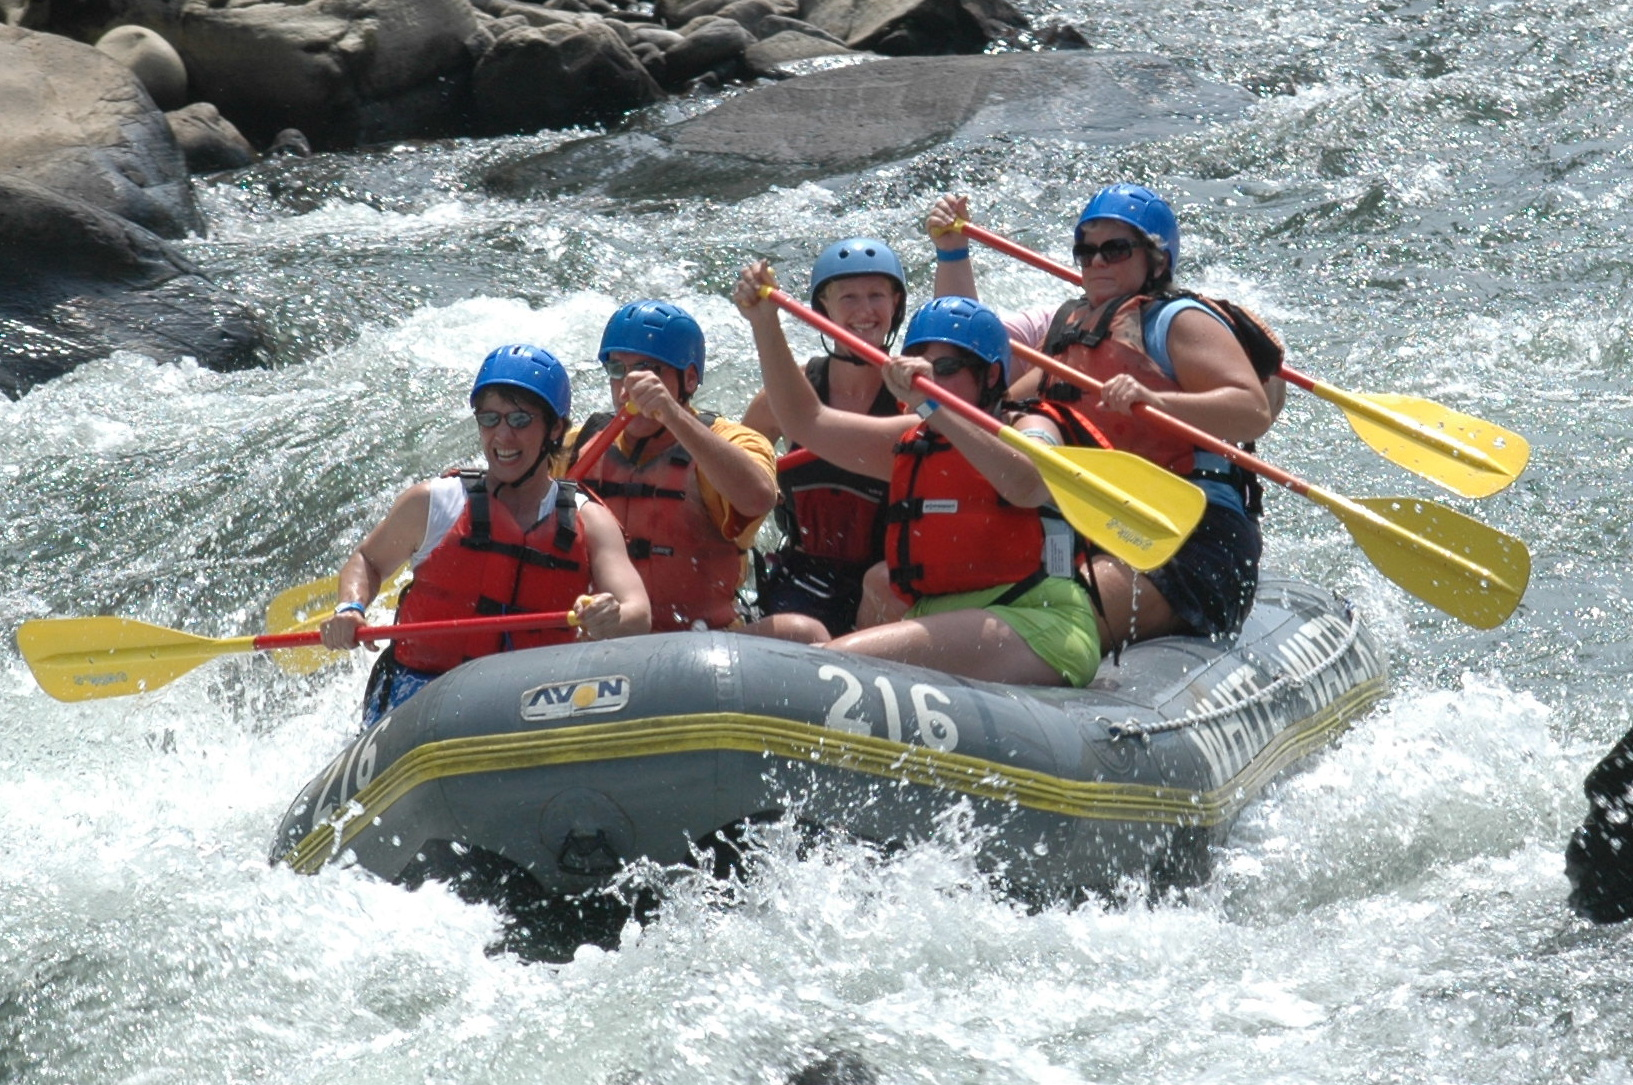 Living the adventure - River rafting on Bistrita River